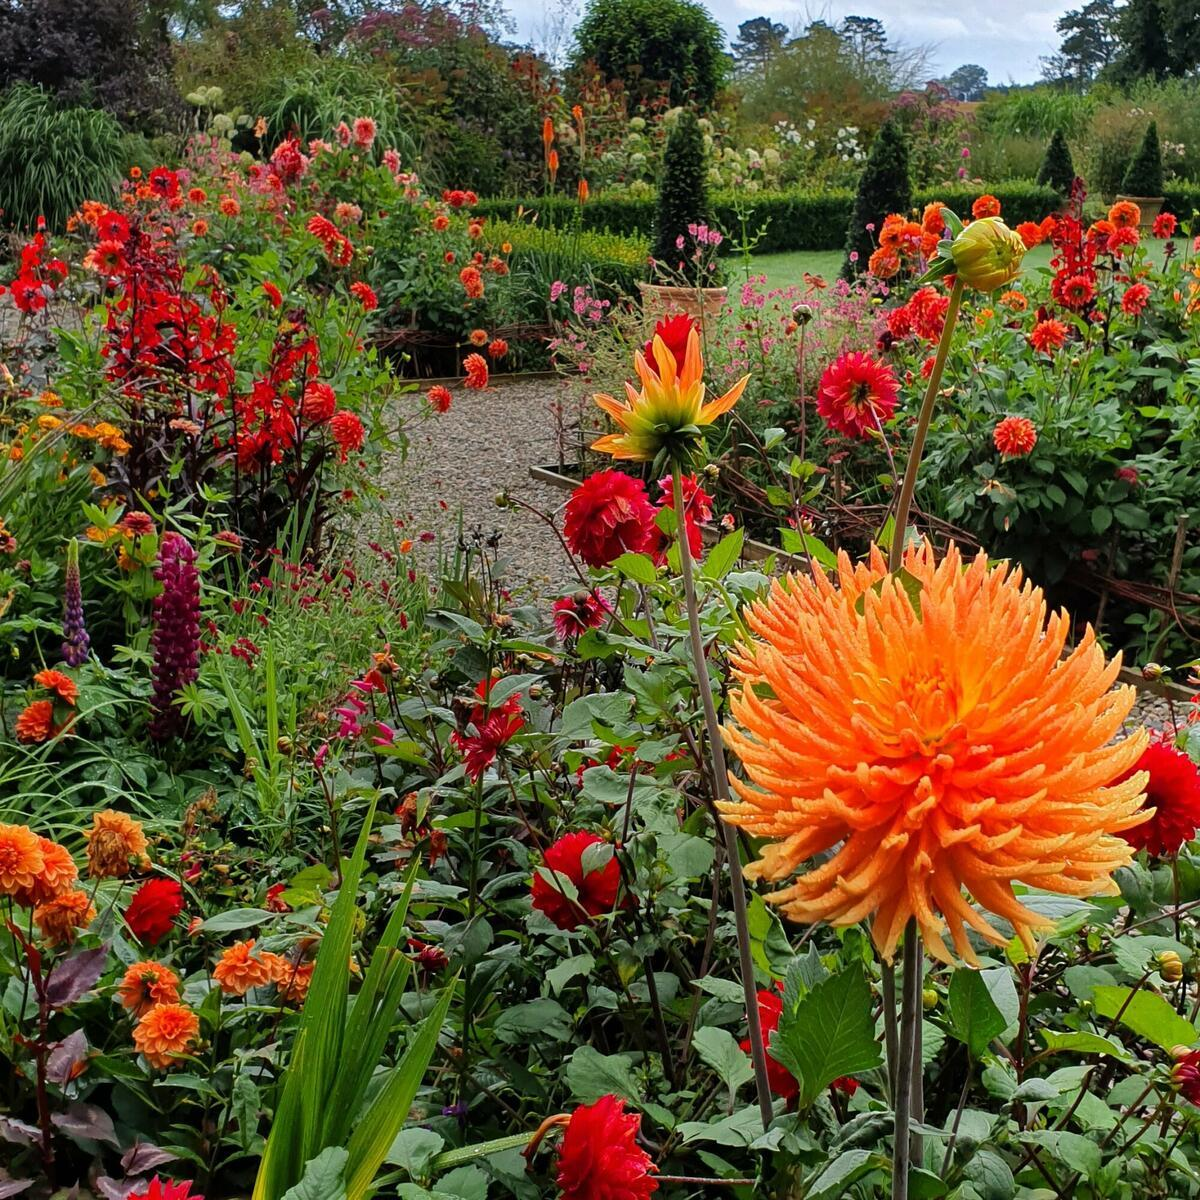 The herbaceous borders of hot colours